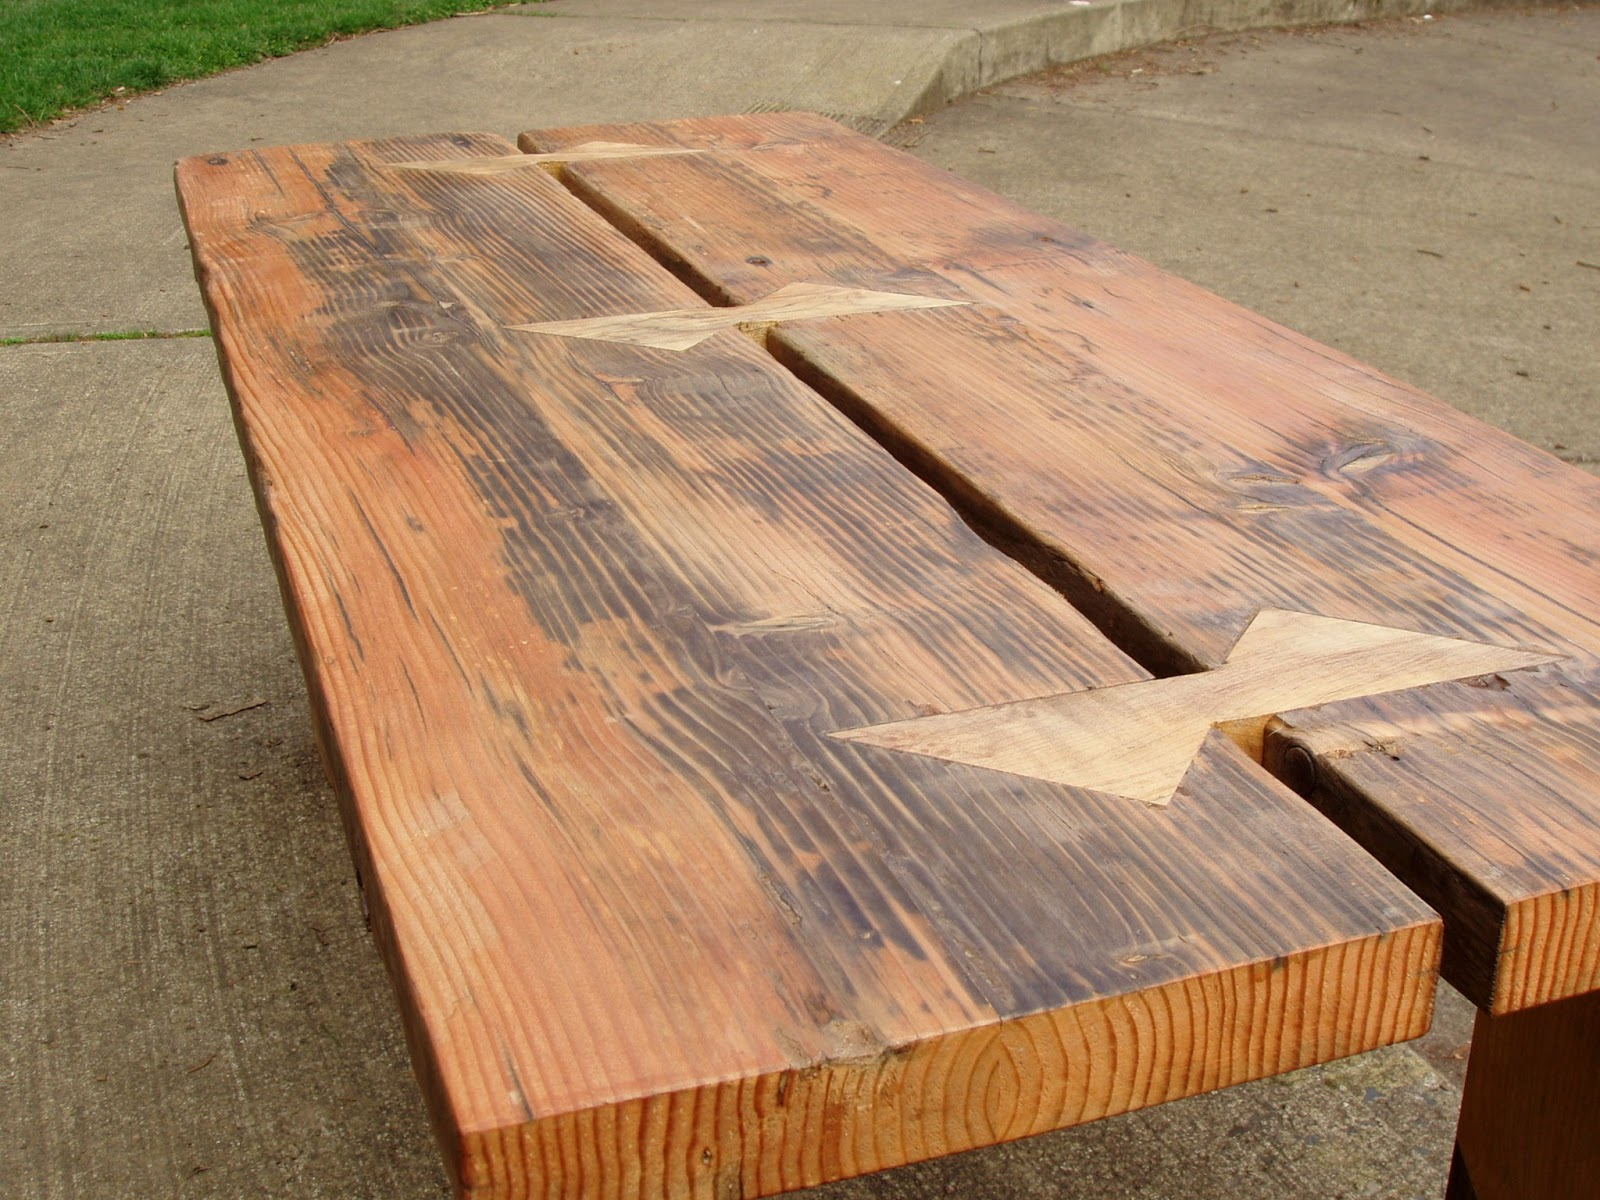 Reclaimed wood furniture portland images making wood Reclaimed furniture portland